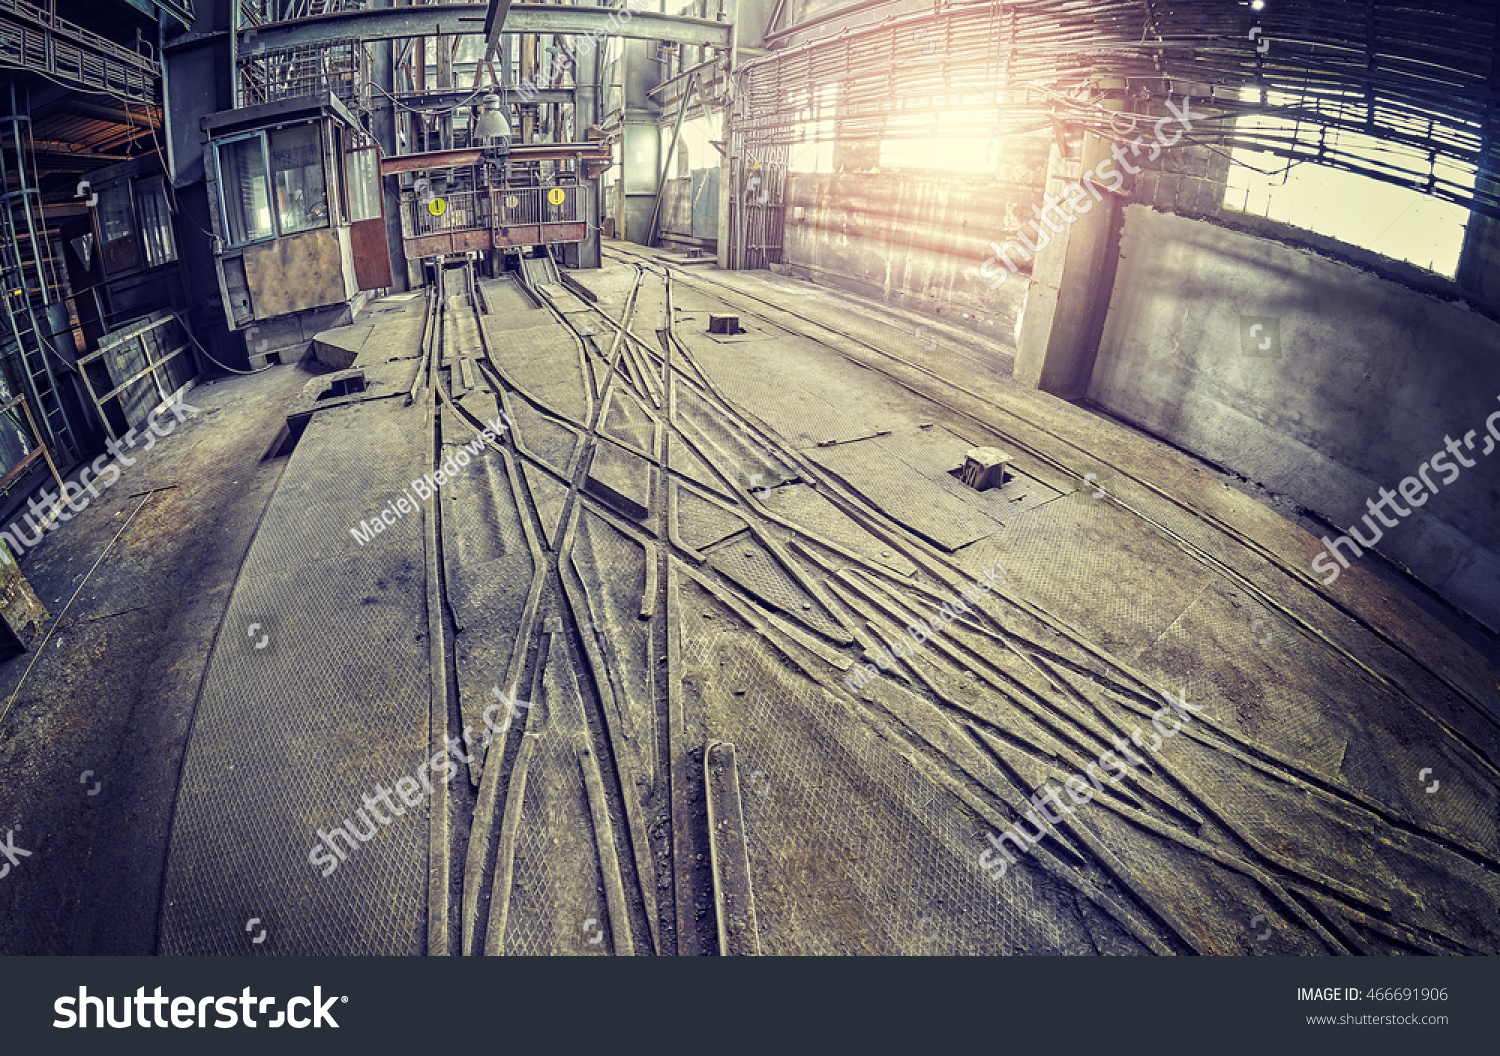 vintage toned fisheye lens picture of abandoned industrial hall interior with trolley tracks. Black Bedroom Furniture Sets. Home Design Ideas